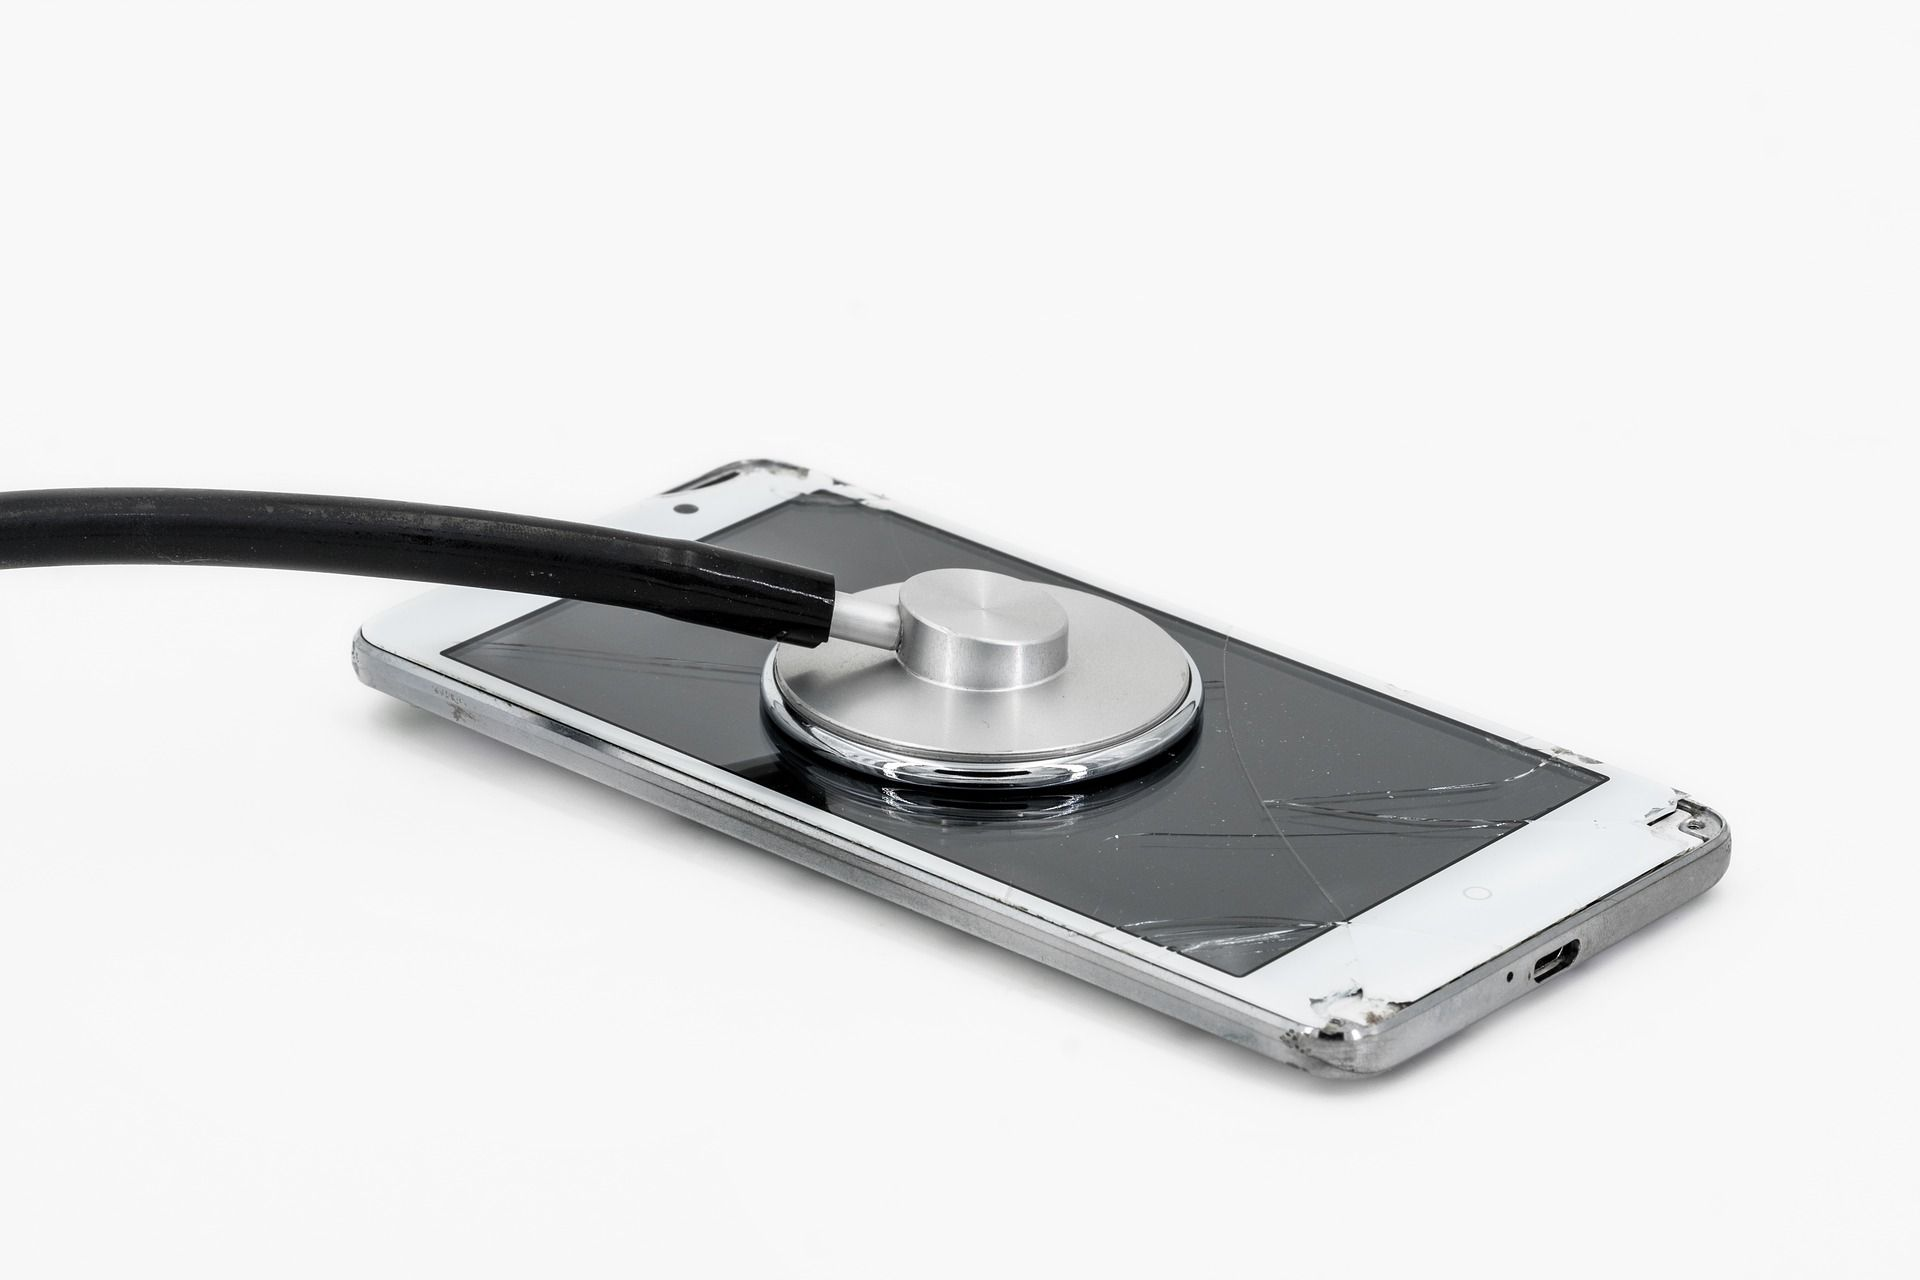 We fix virtually any fault on almost any mobile handset